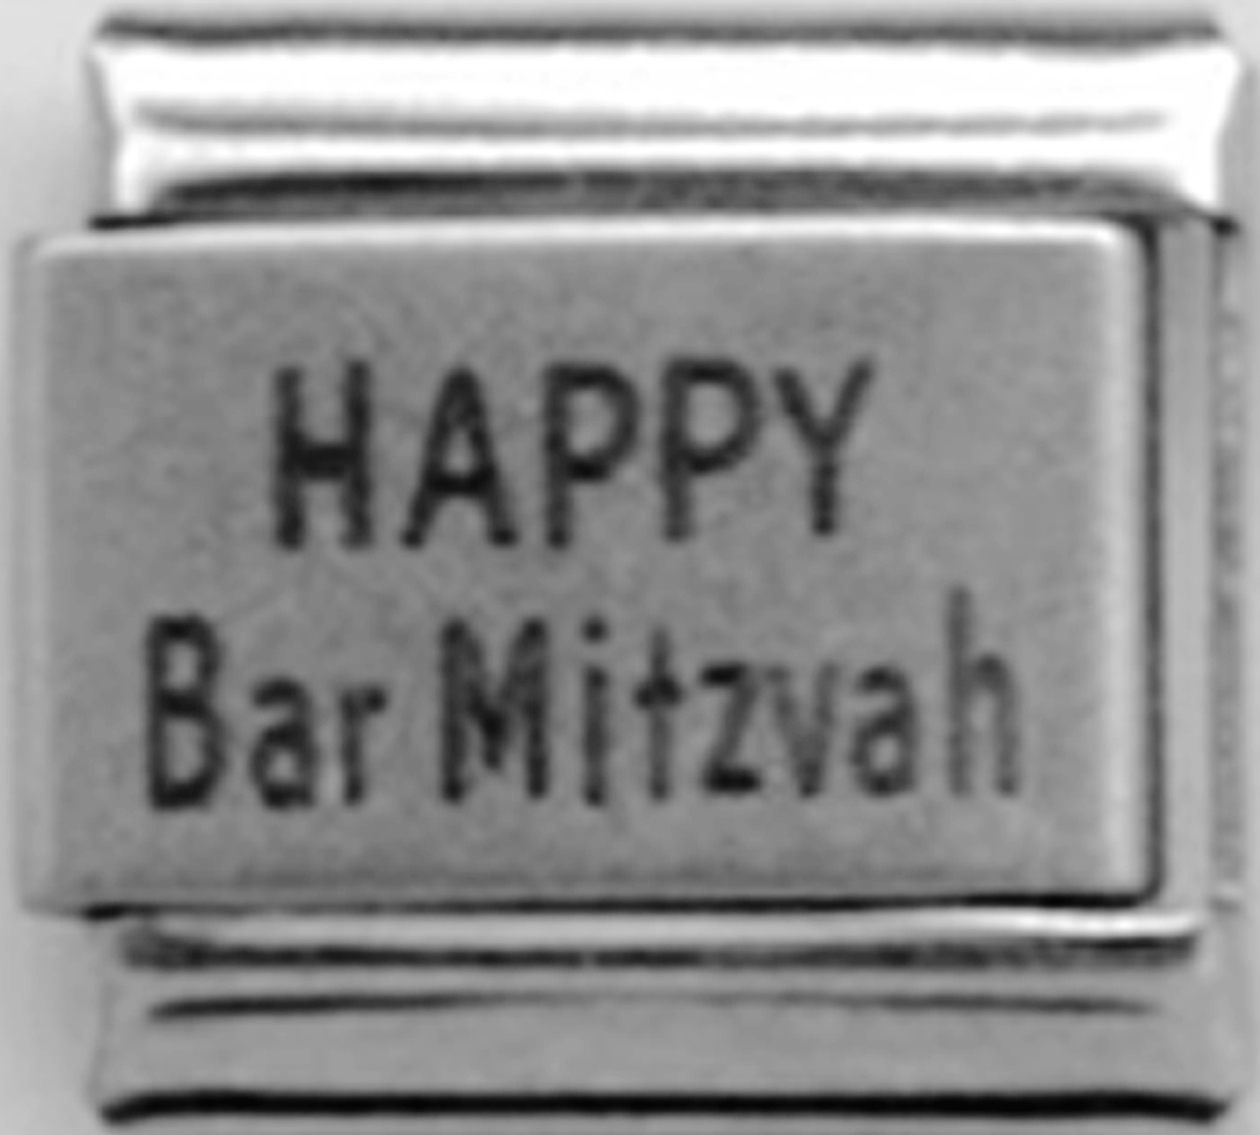 LC007-Happy-Bar-Mitzvah